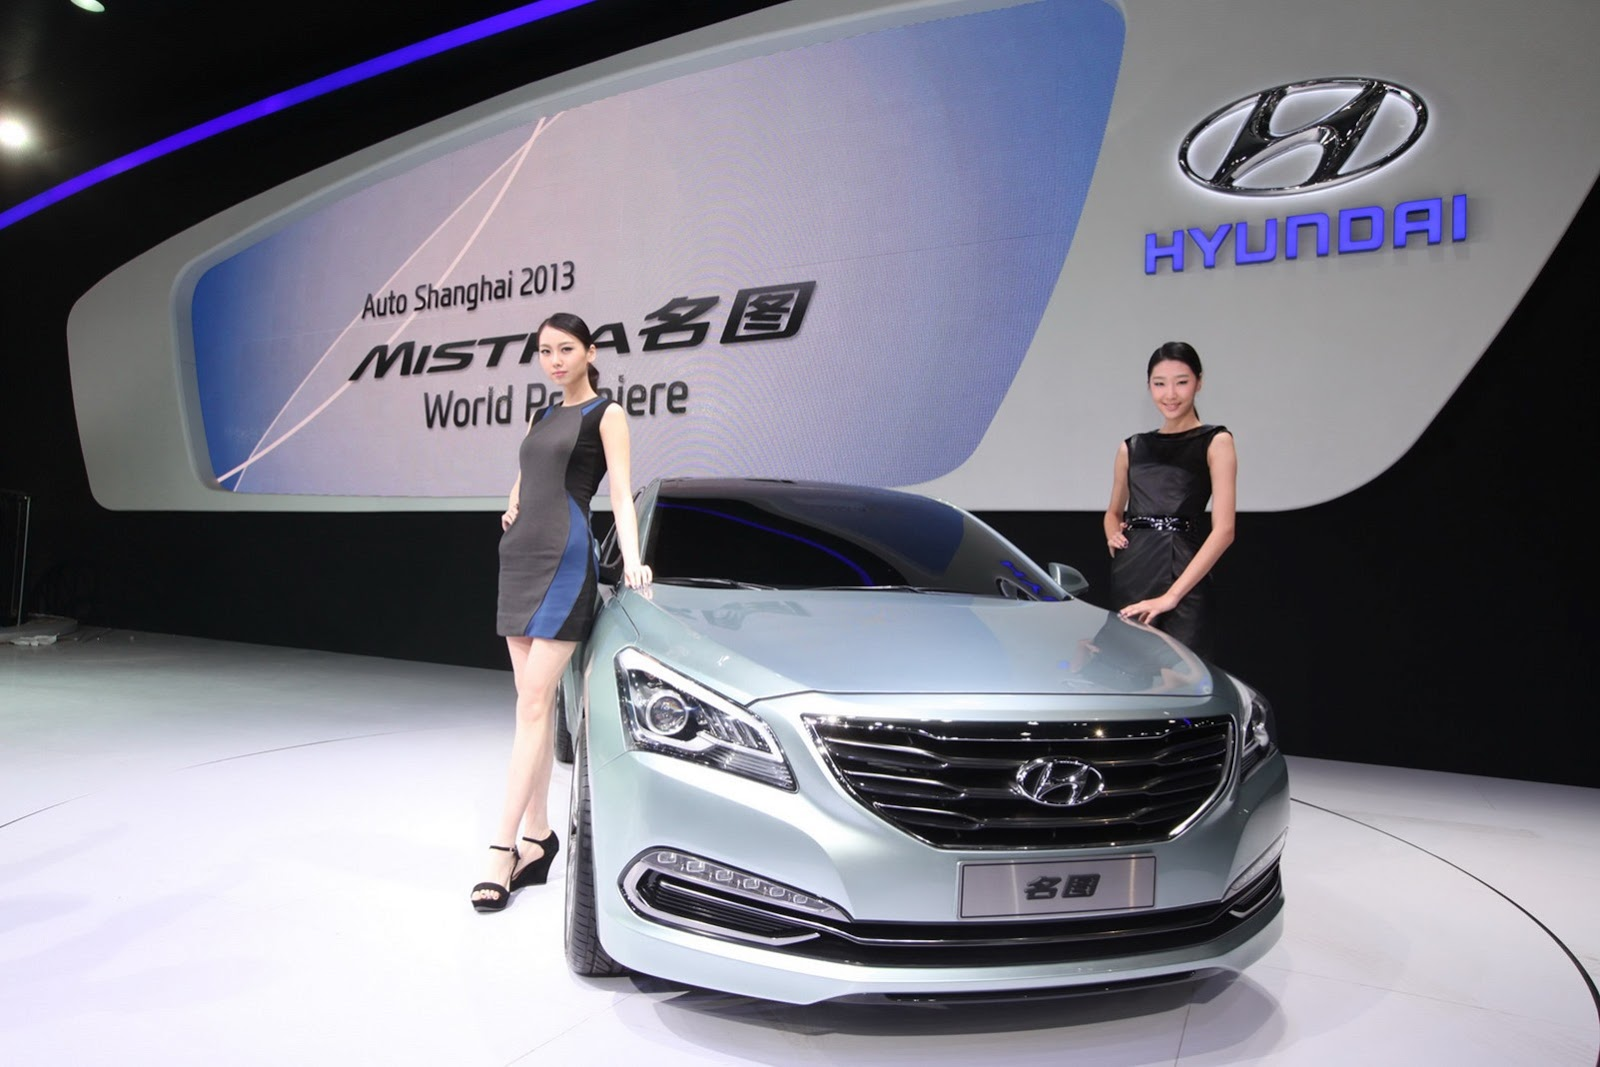 The Mistra, Hyundai Motor's sedan exclusively built for the Chinese market.